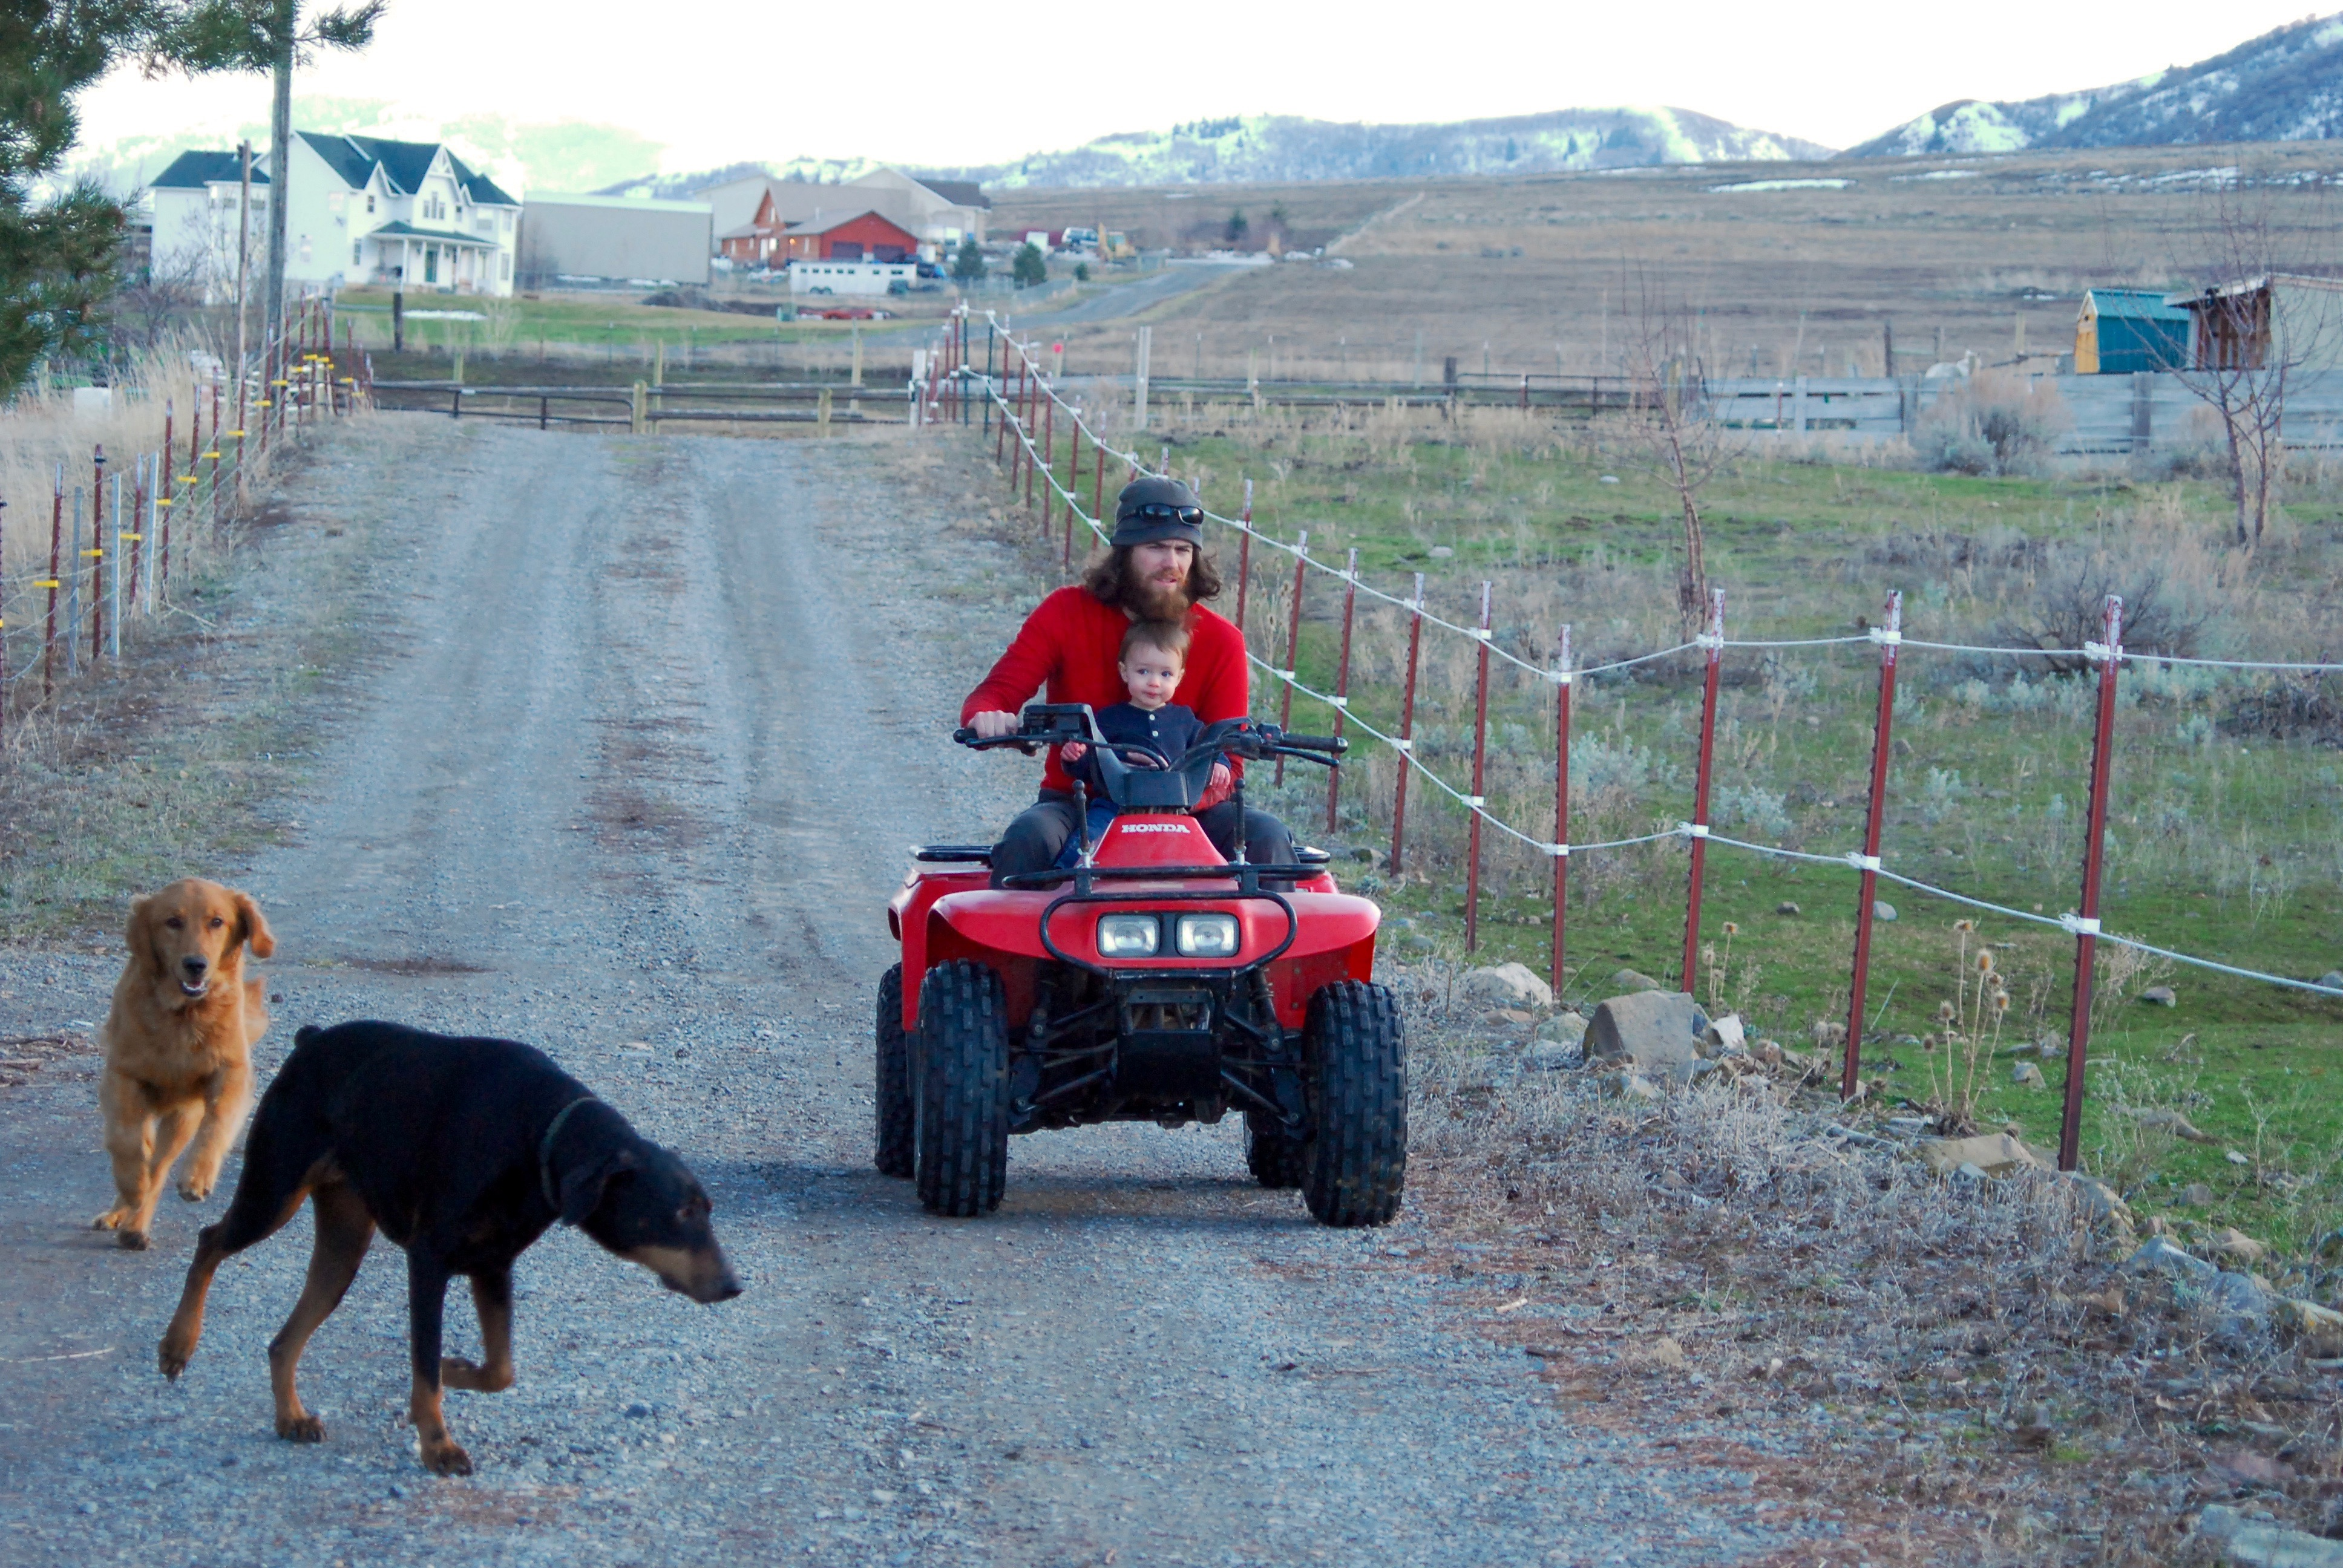 Andy riding the 4-wheeler with Abram